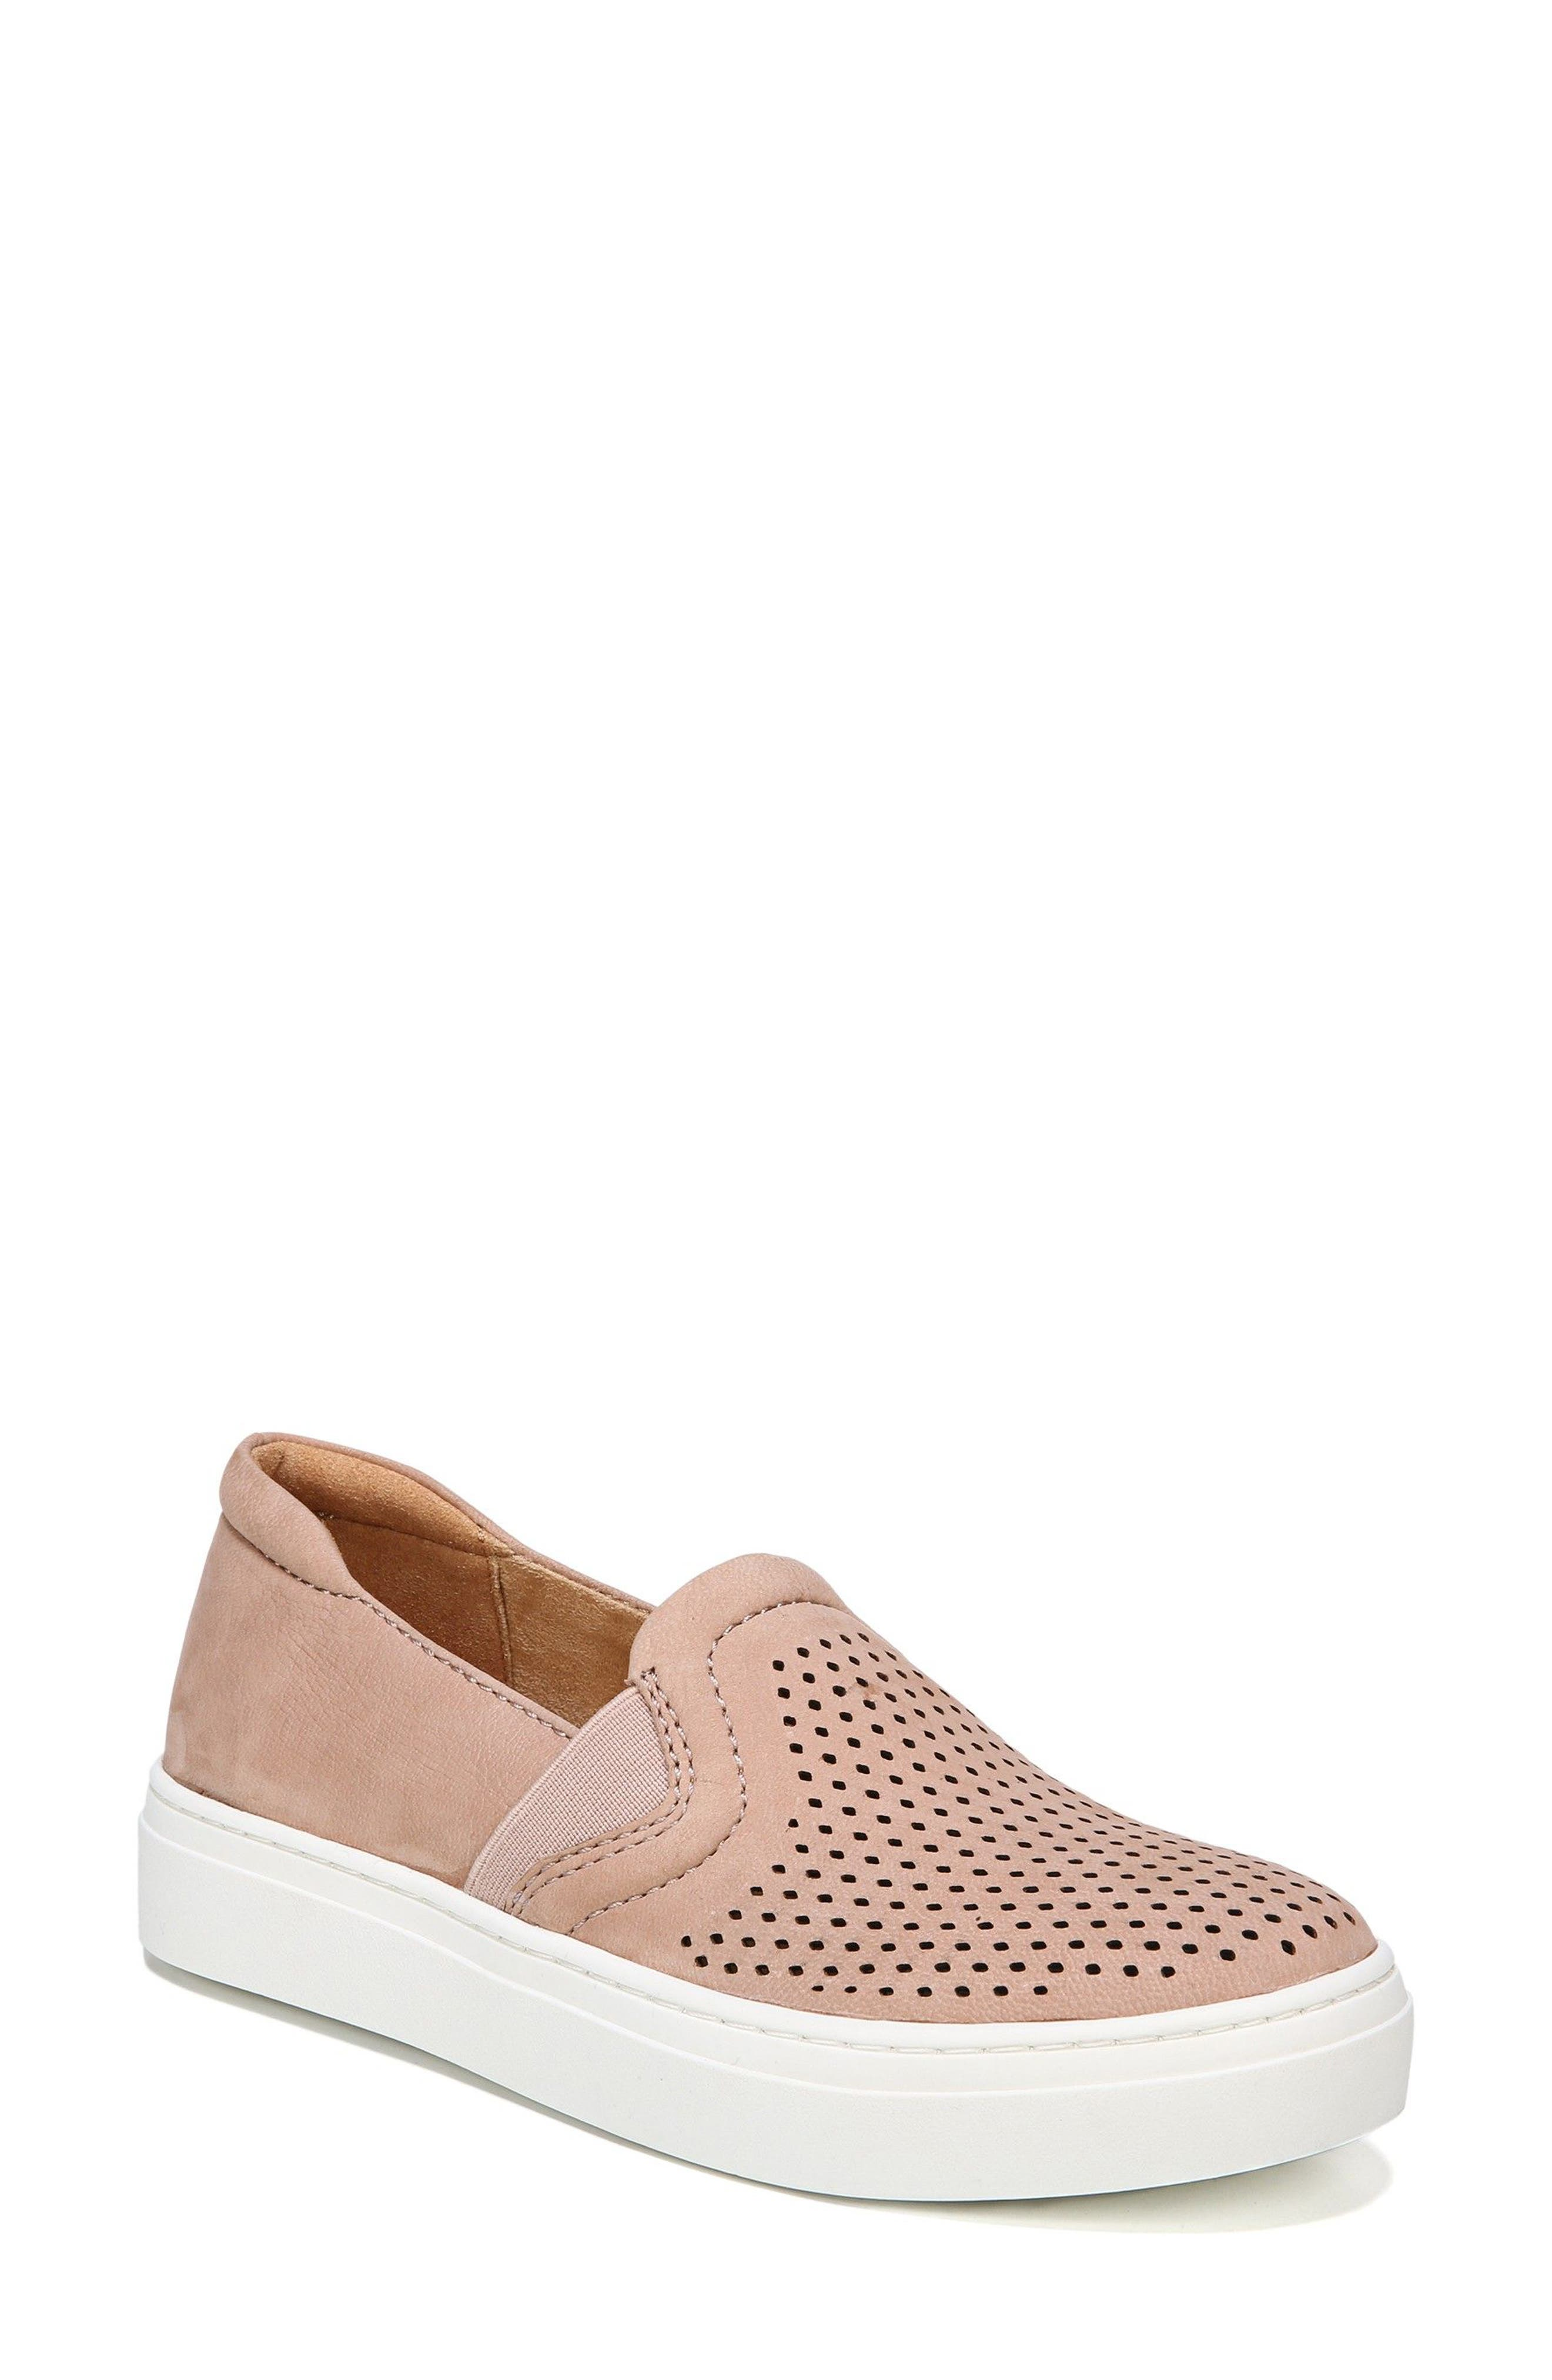 Naturalizer Carly Slip-On Sneaker, Pink